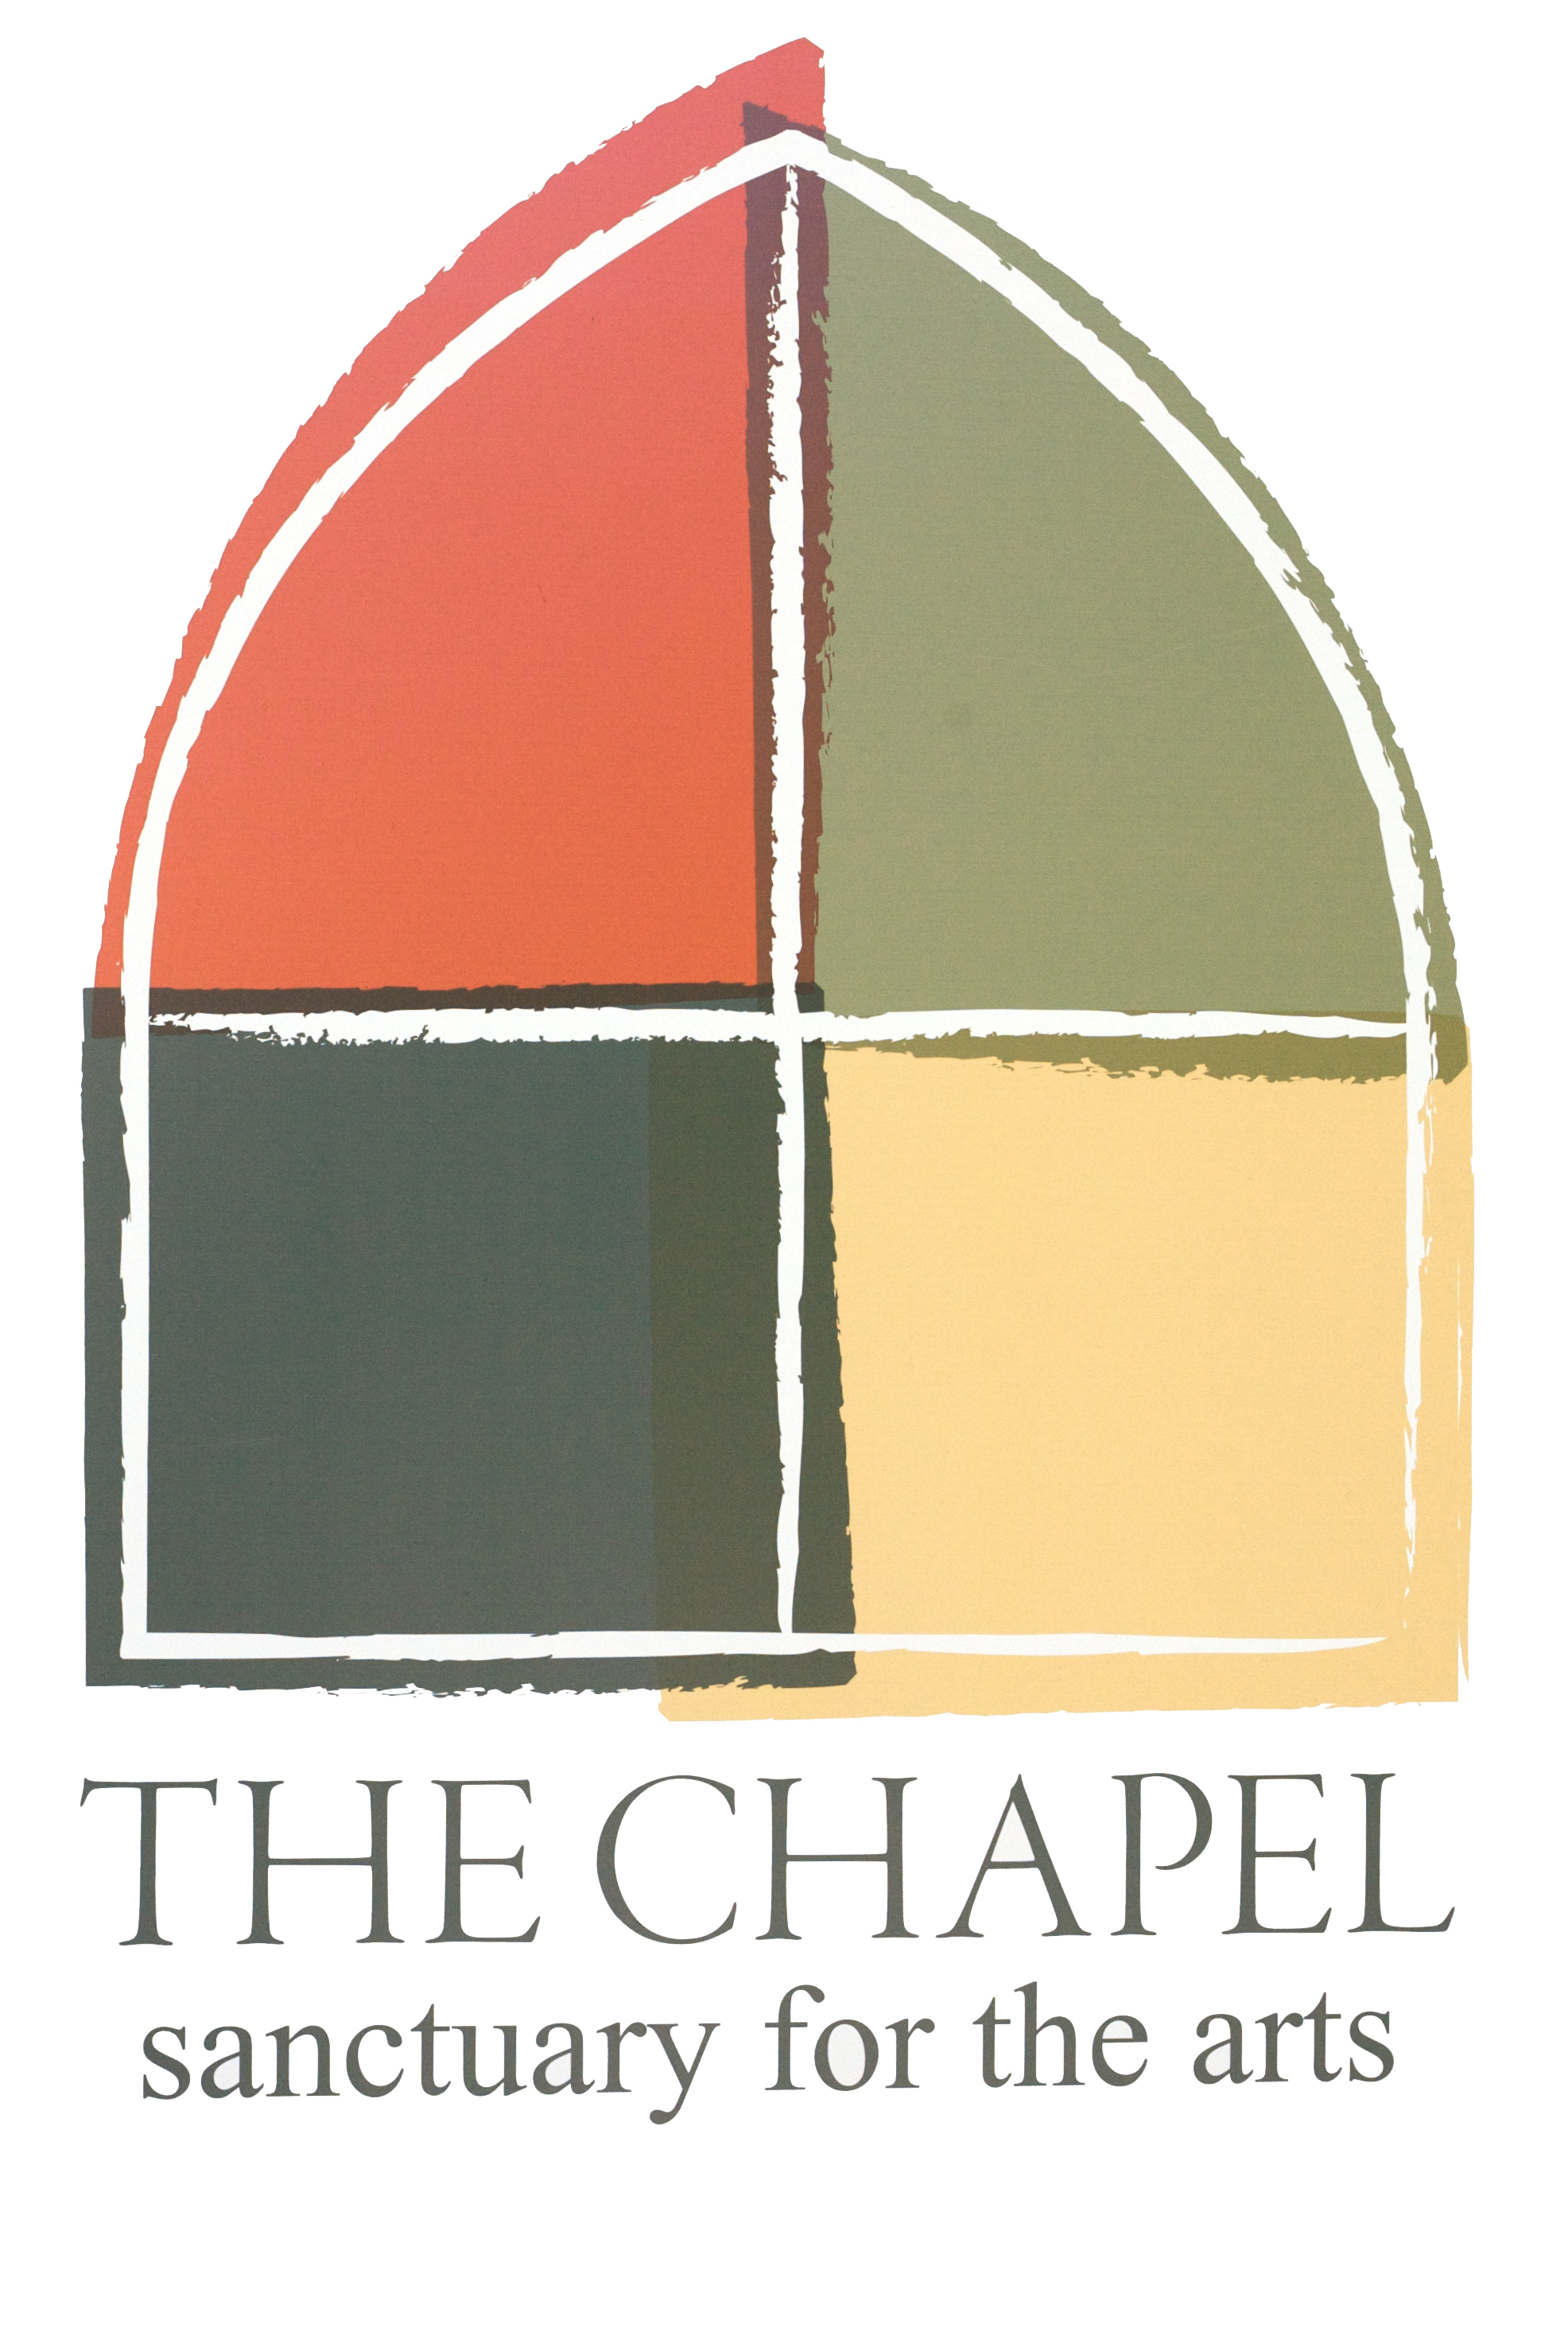 The Chapel Venue has been a key part of our success! Providing a home base and an awesome vibe.